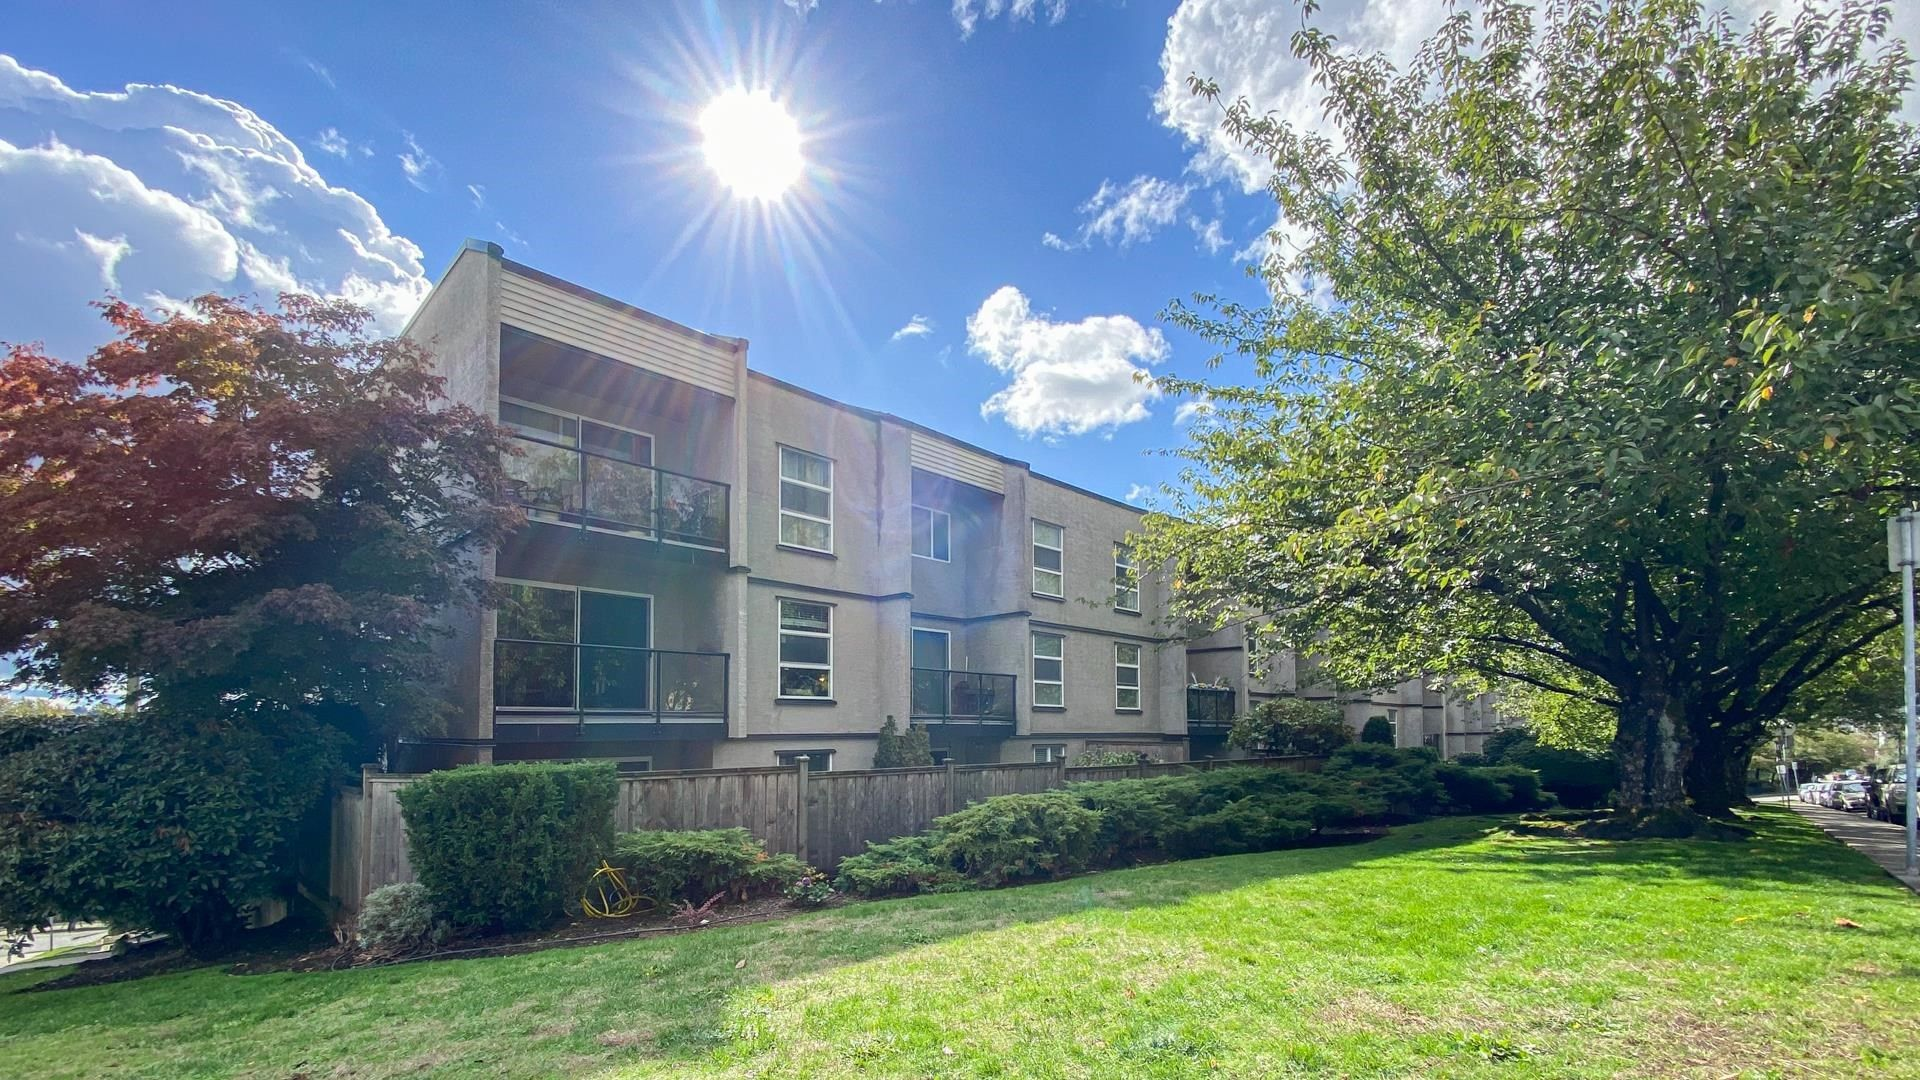 """Main Photo: 216 312 CARNARVON Street in New Westminster: Downtown NW Condo for sale in """"CARNARVON TERRACE"""" : MLS®# R2624457"""